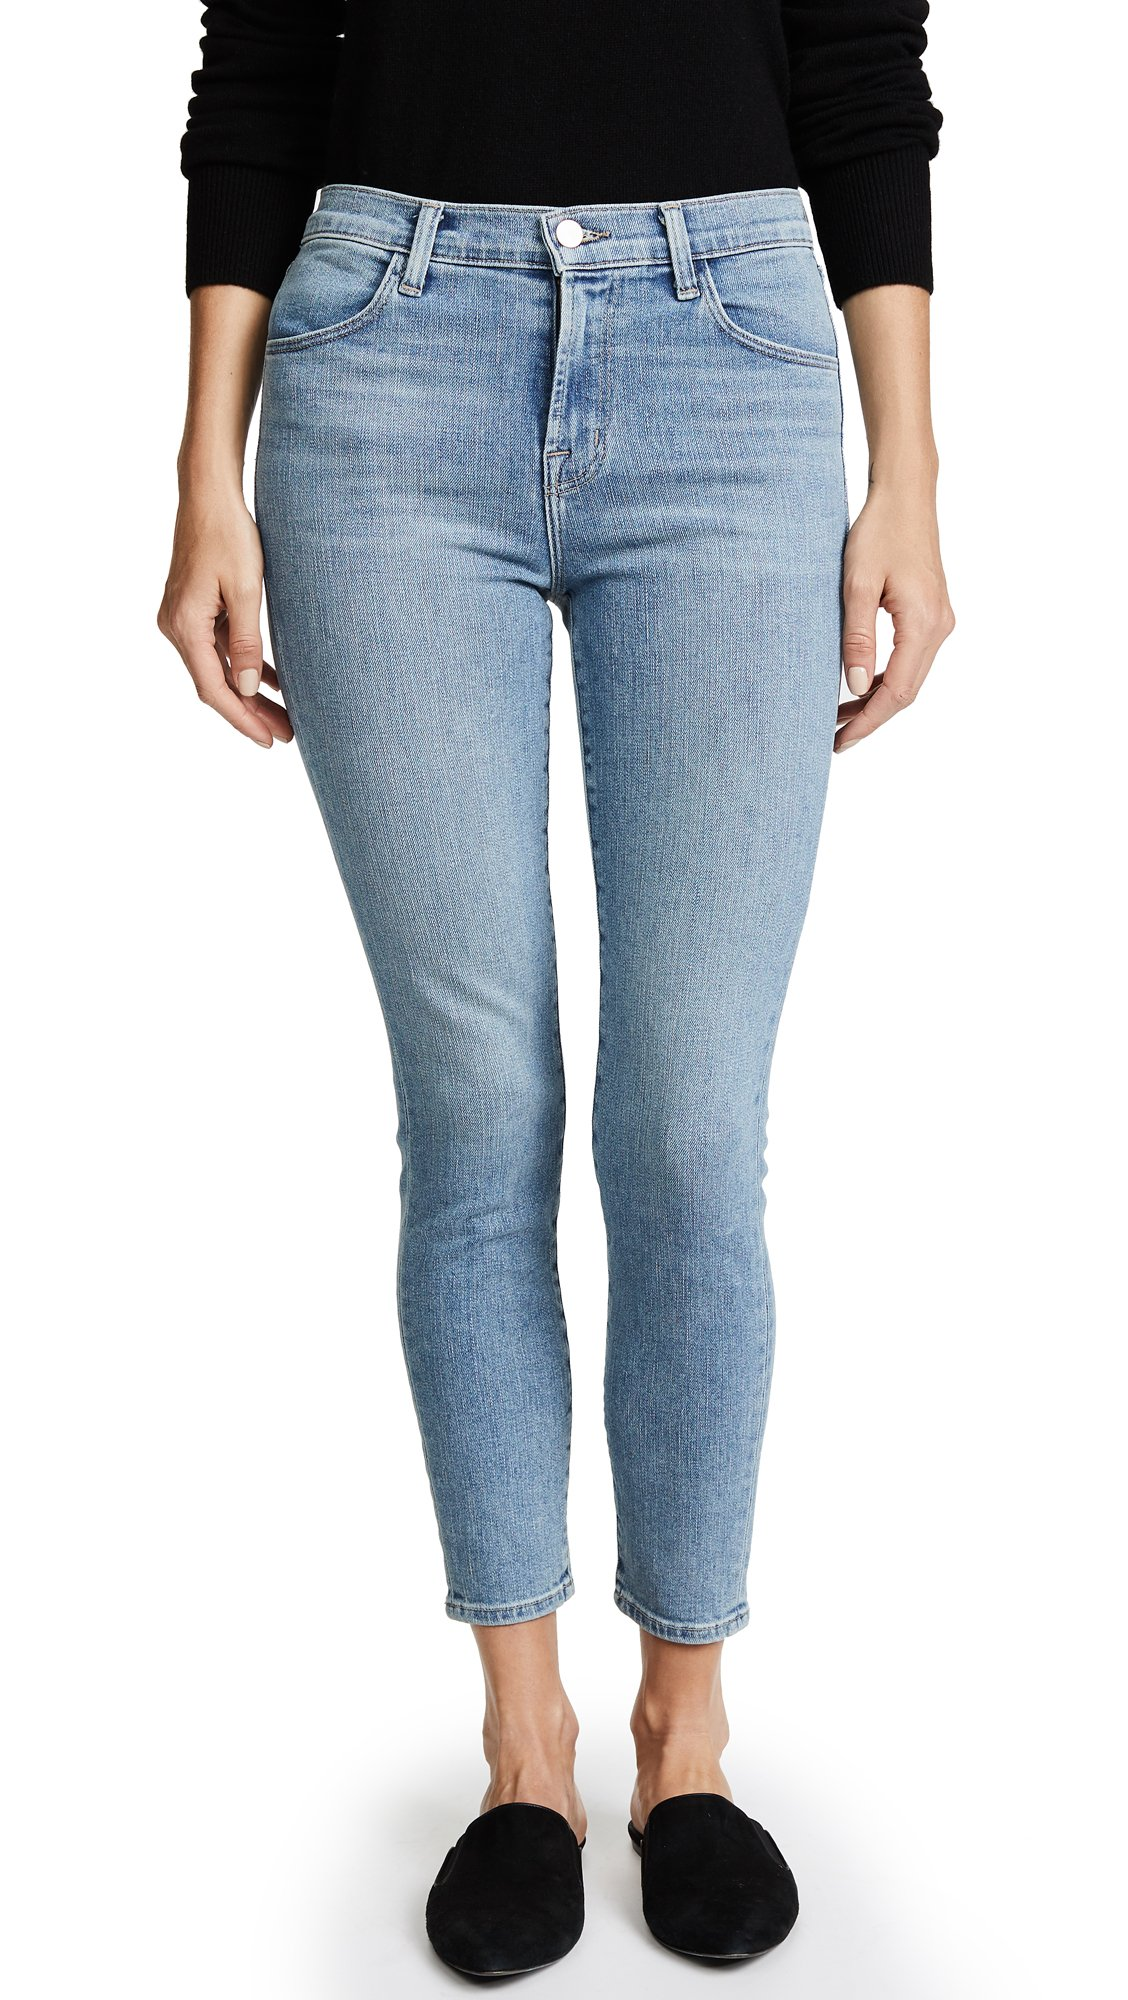 J Brand Women's Alana High Rise Crop Skinny Jeans, Surge, 30